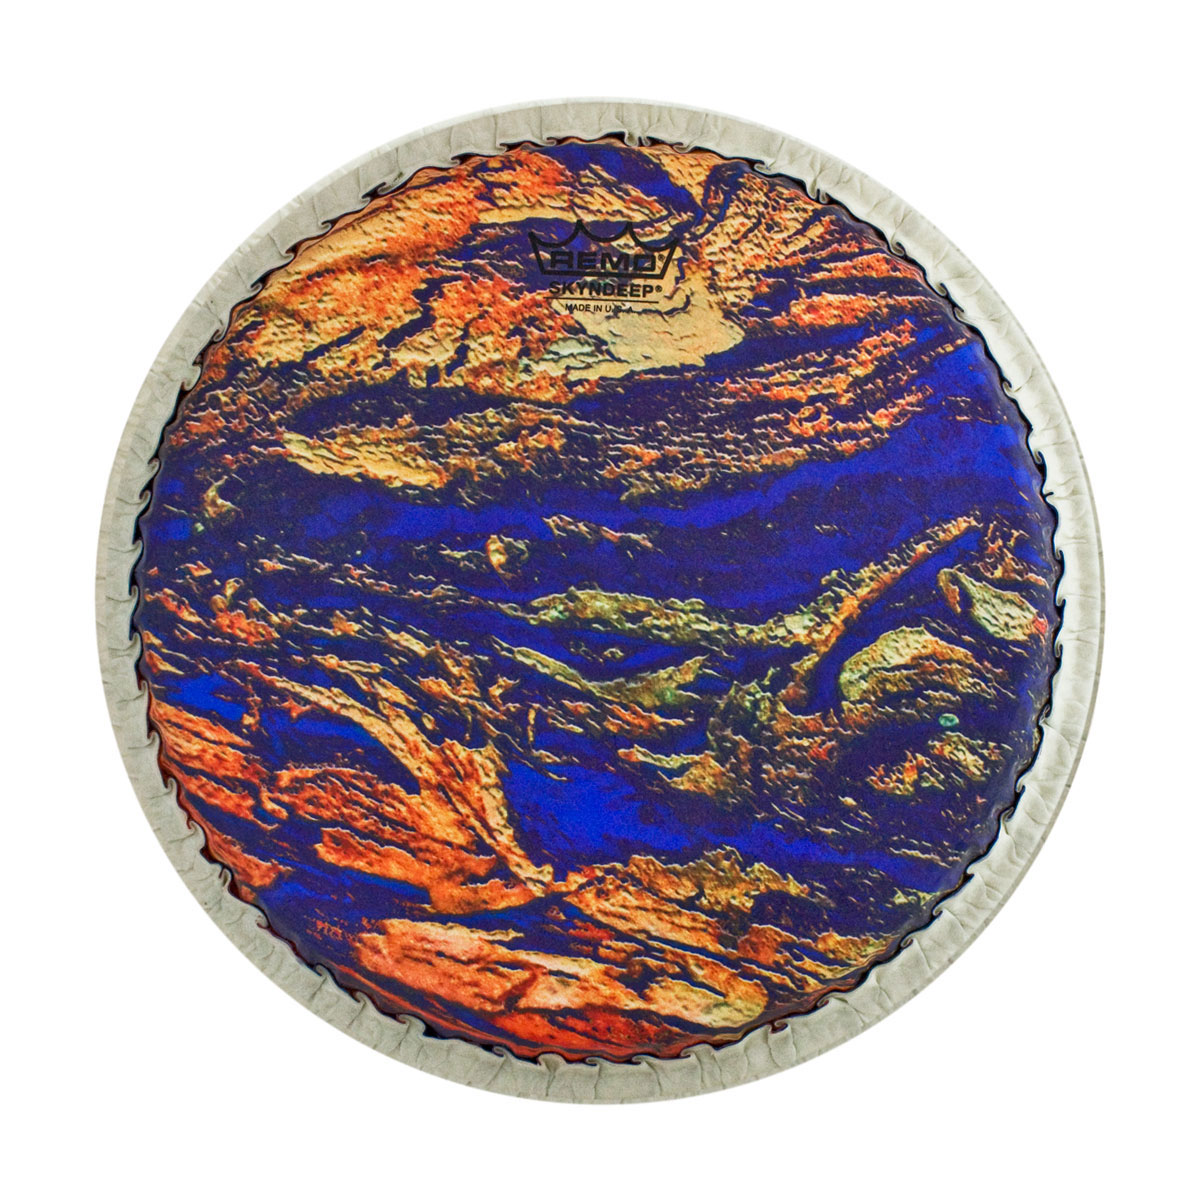 """Remo 11.06"""" Tucked Skyndeep Conga Drum Head with Molten Sea Graphic"""